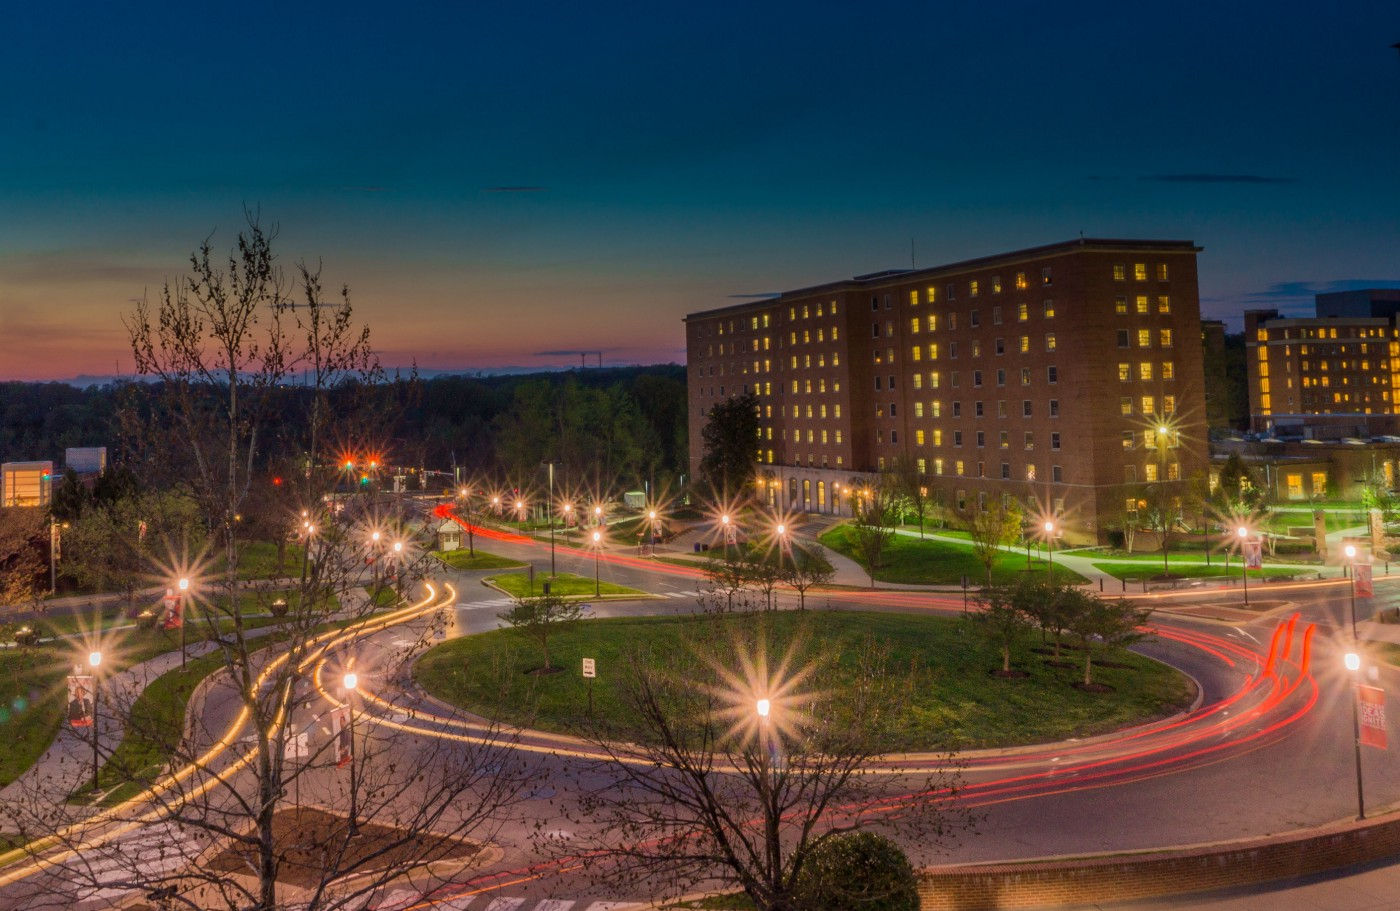 A night view of UMD campus